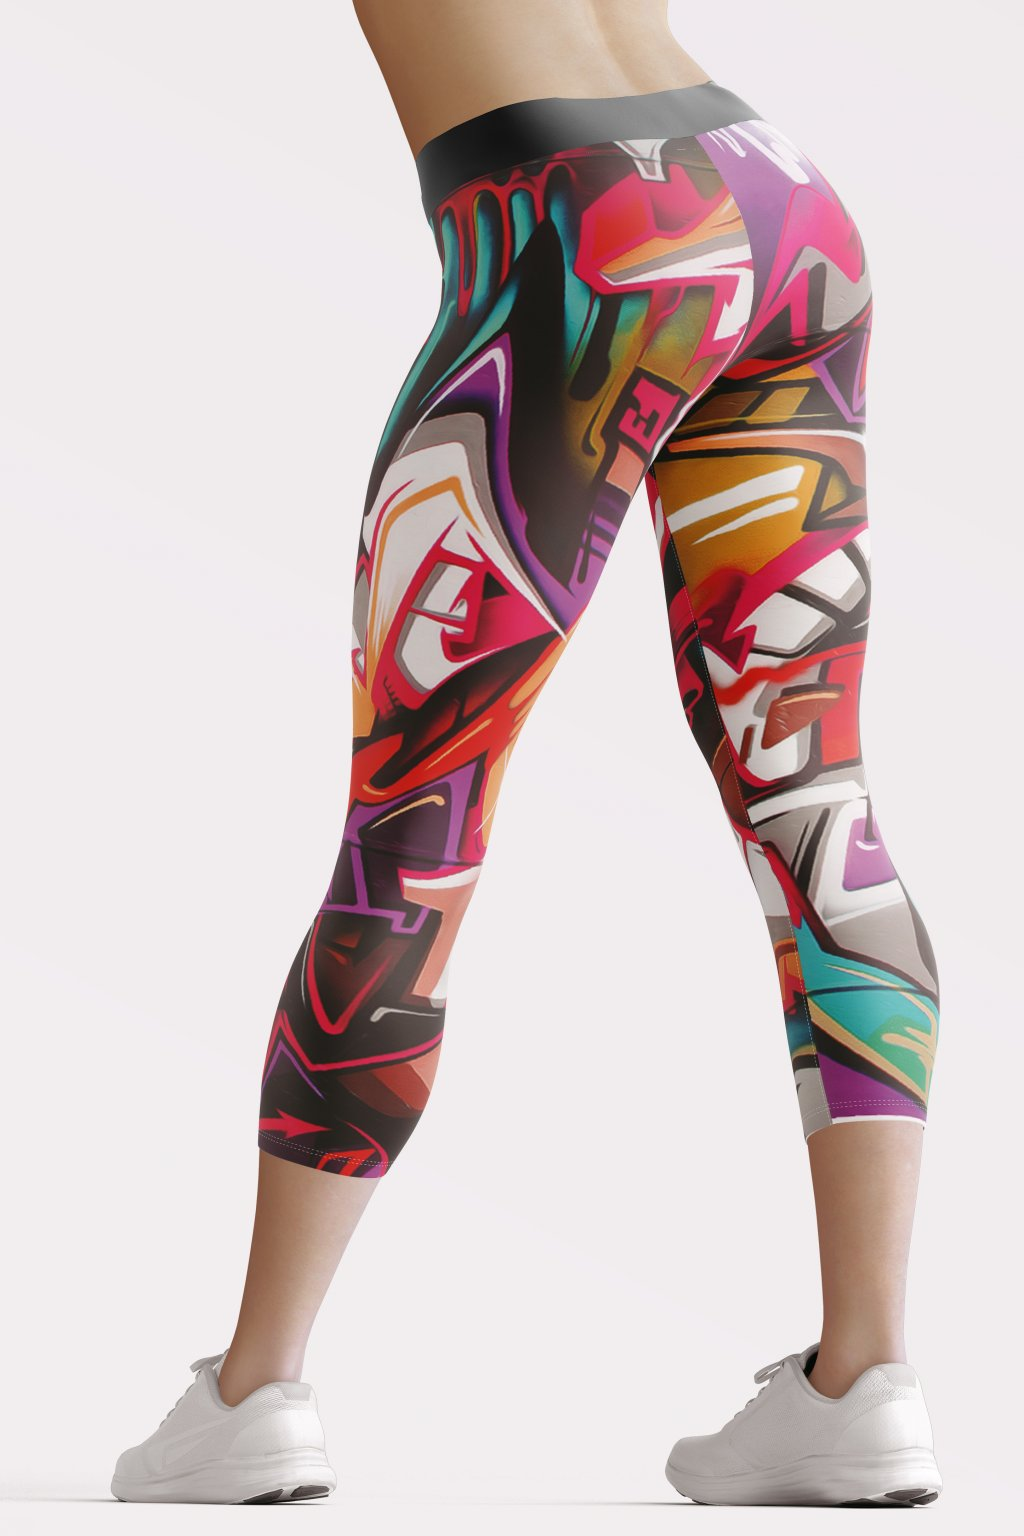 melbourne 3 4 leggings back by utopy